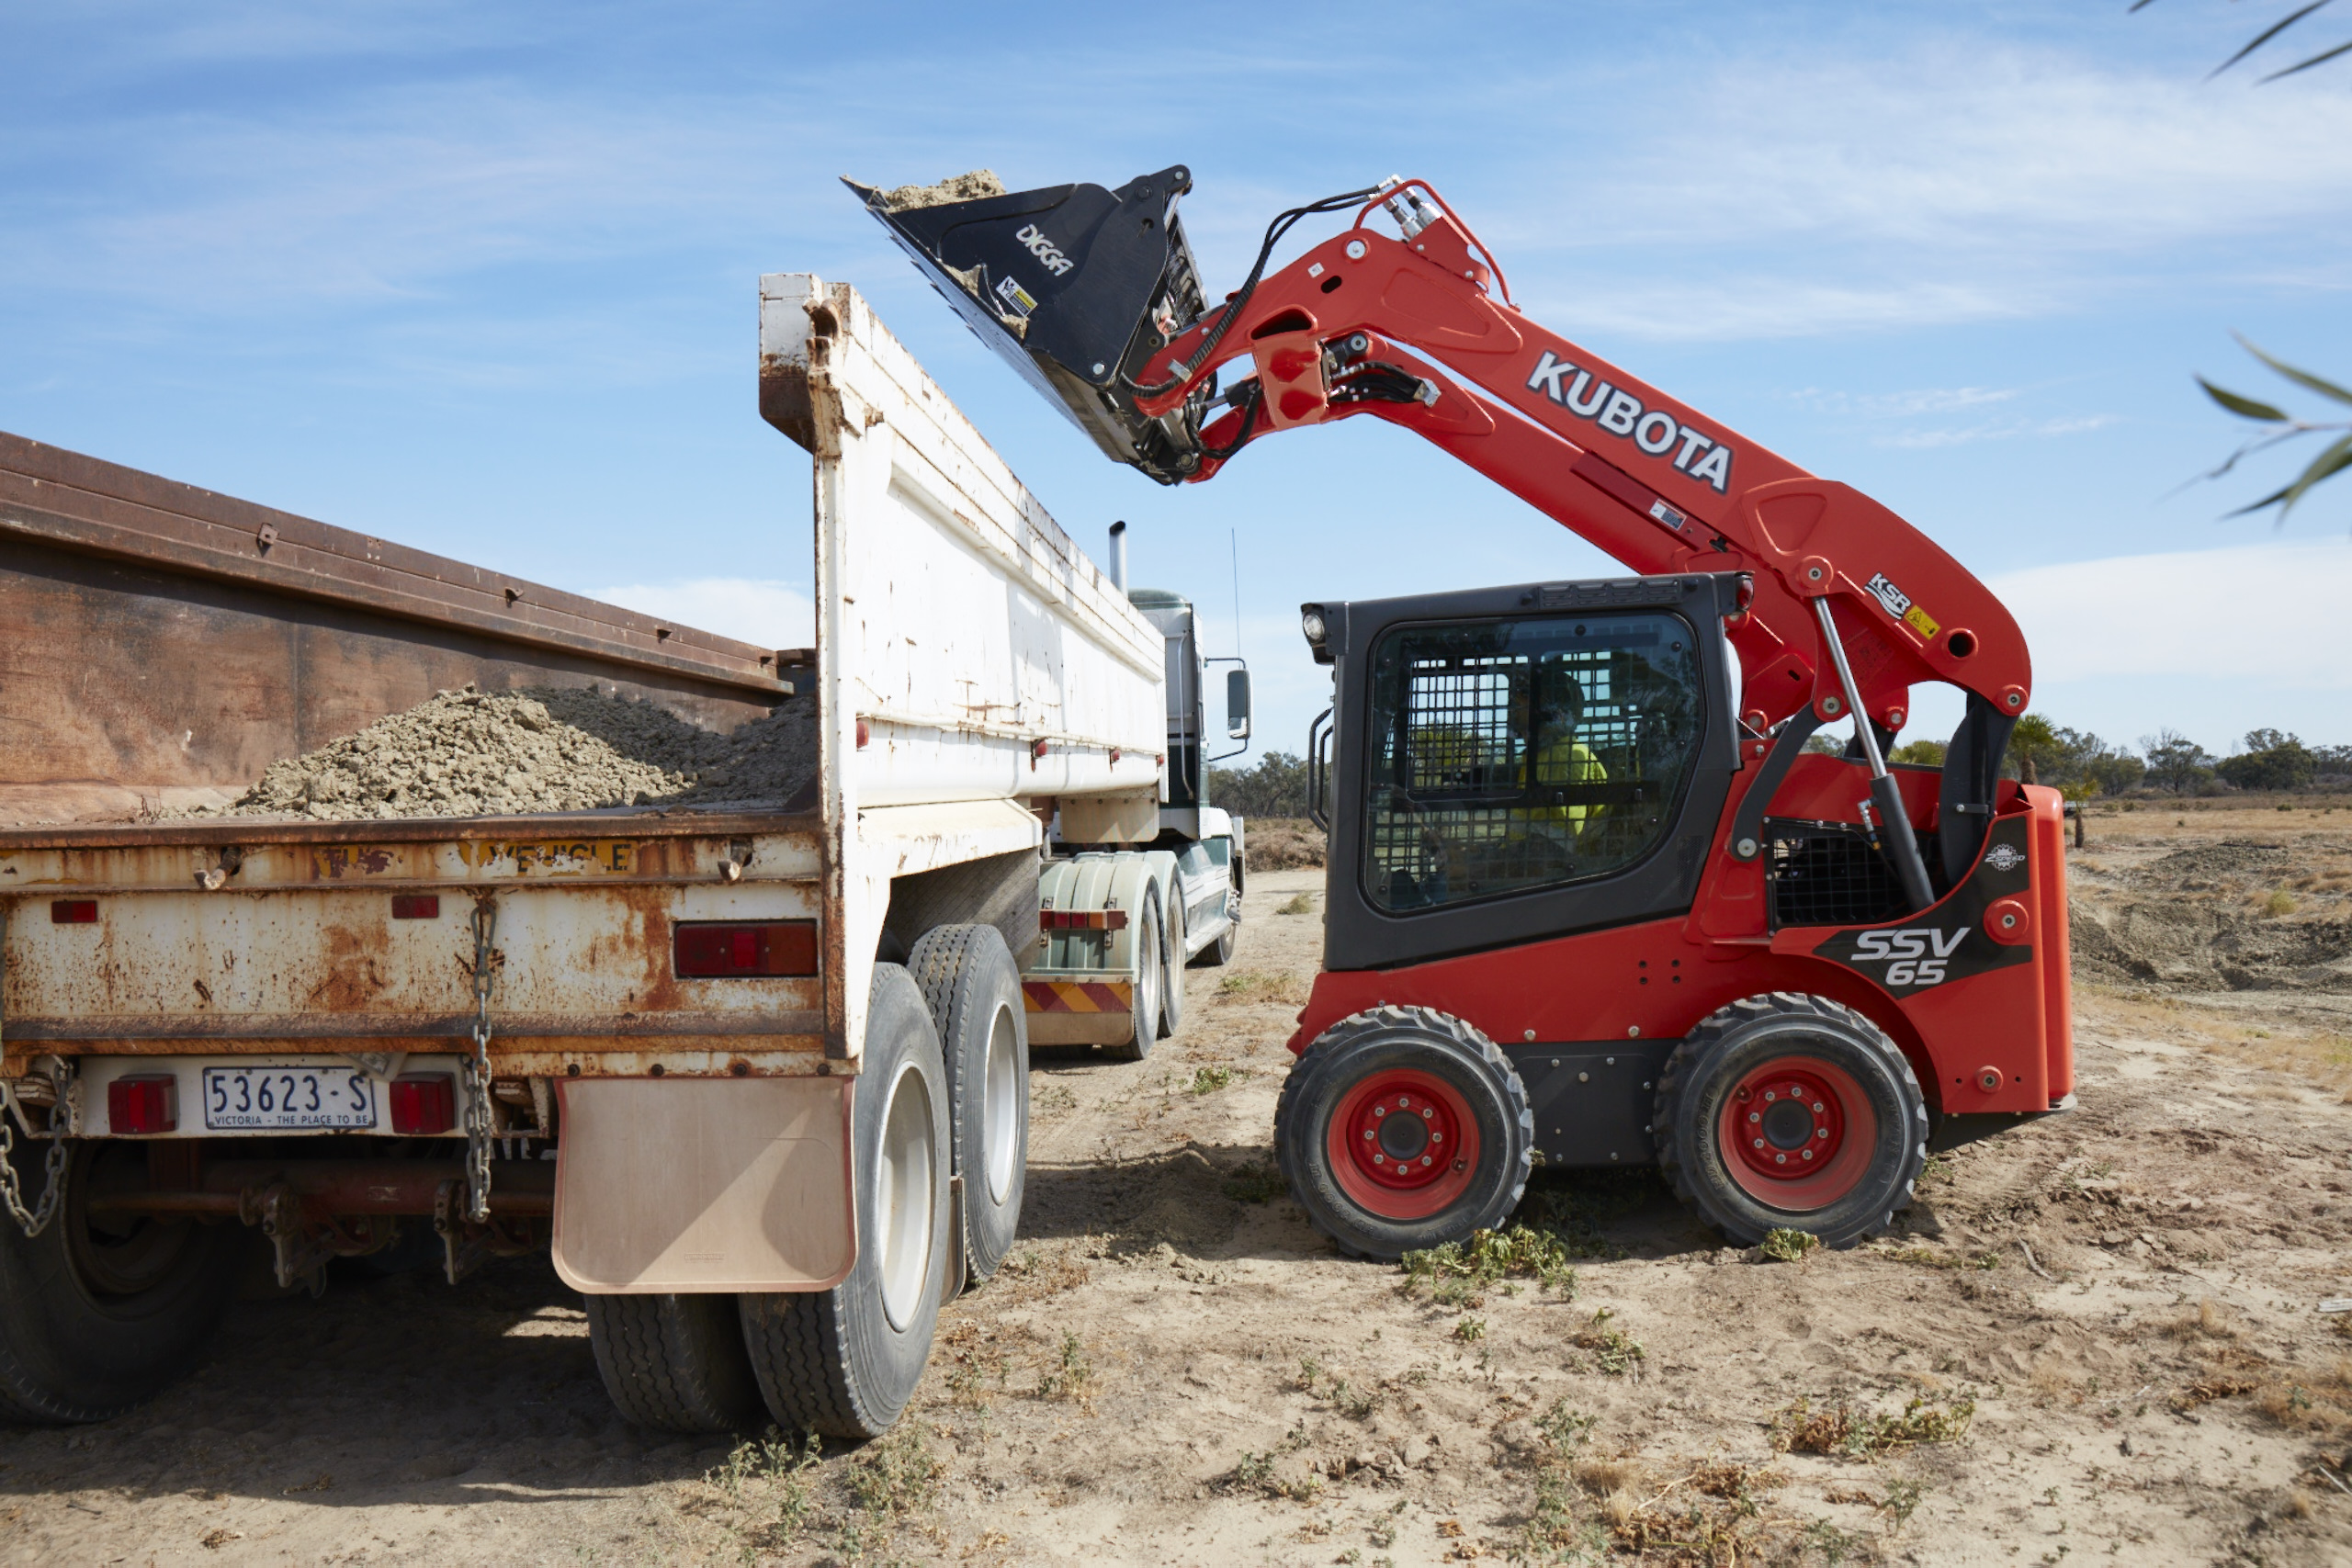 Kubota SSV high lift bucket skid steer